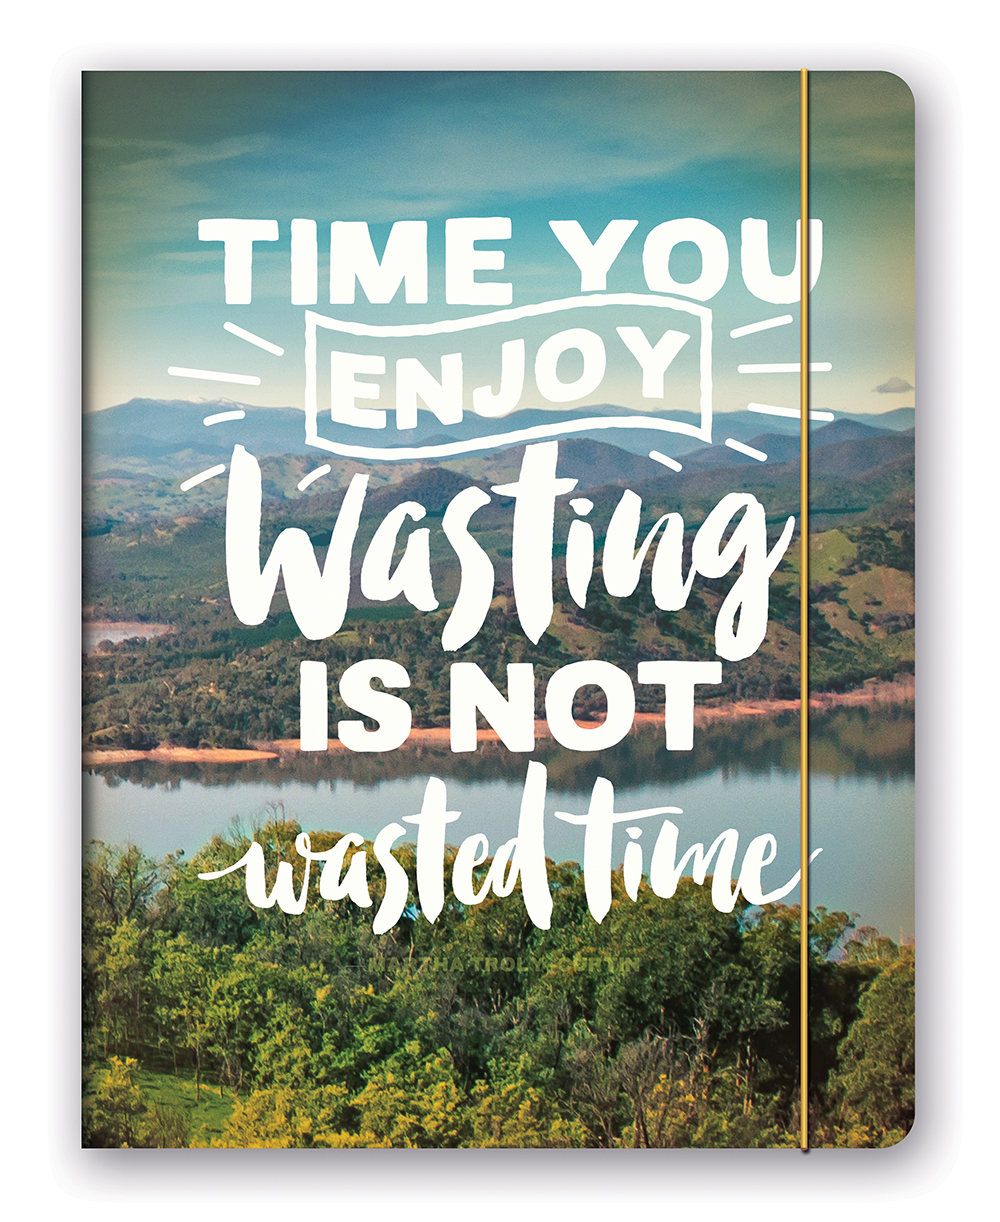 Time You Enjoy Wasting Just Right Monthly Planner 2018 by Orange Circle Studio 9781682582626